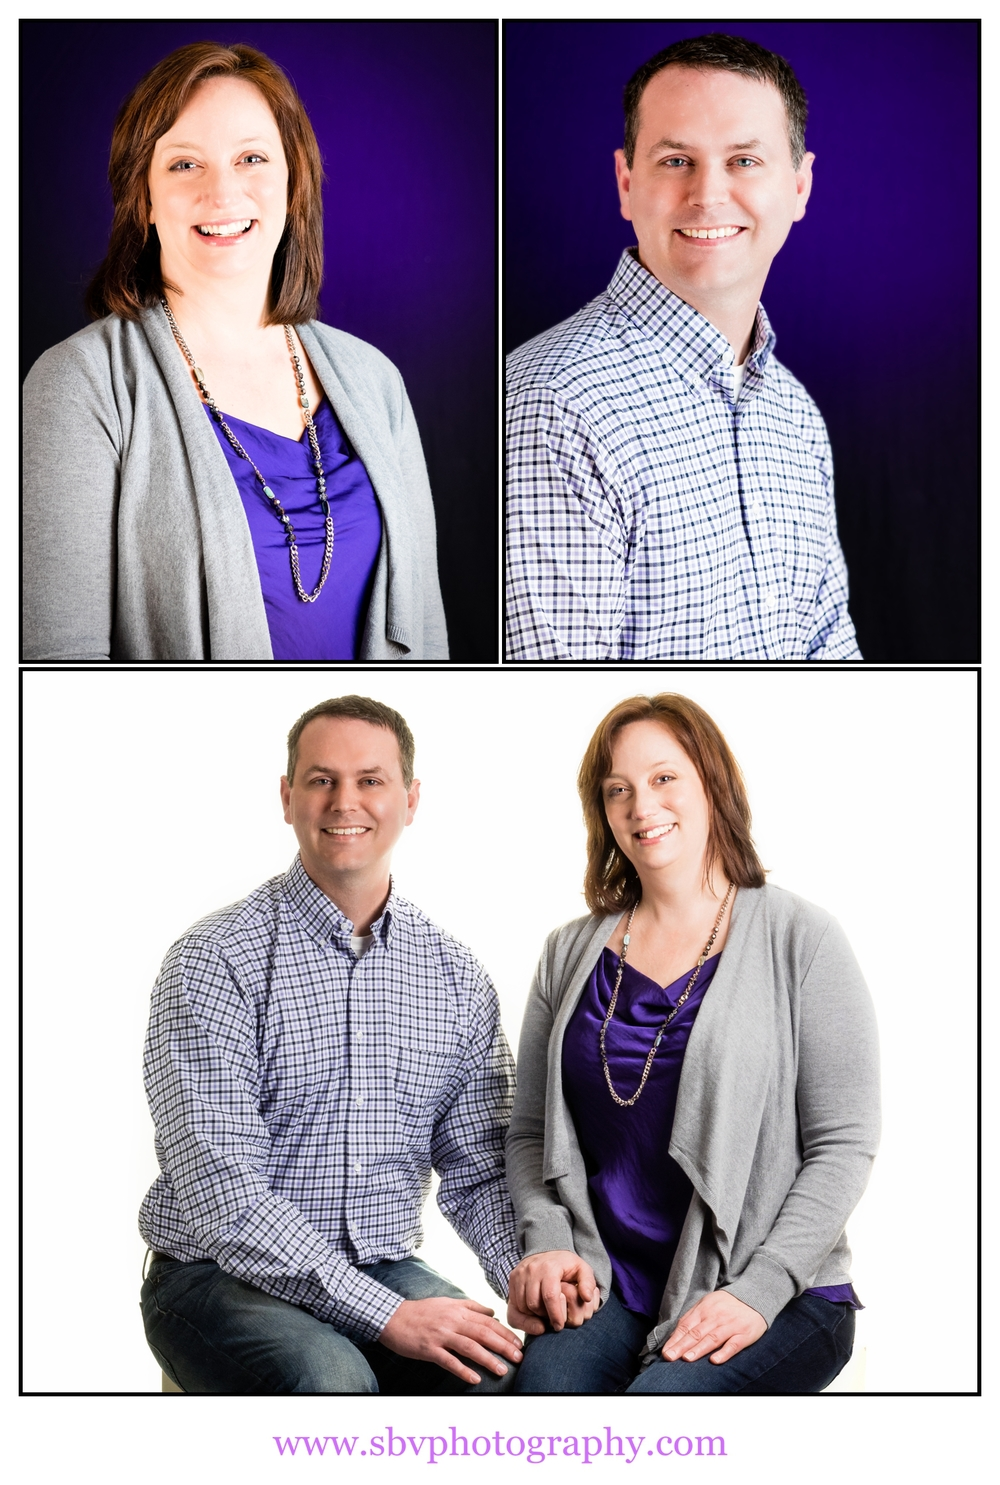 Studio business portraits for Embrace Parent Coaching